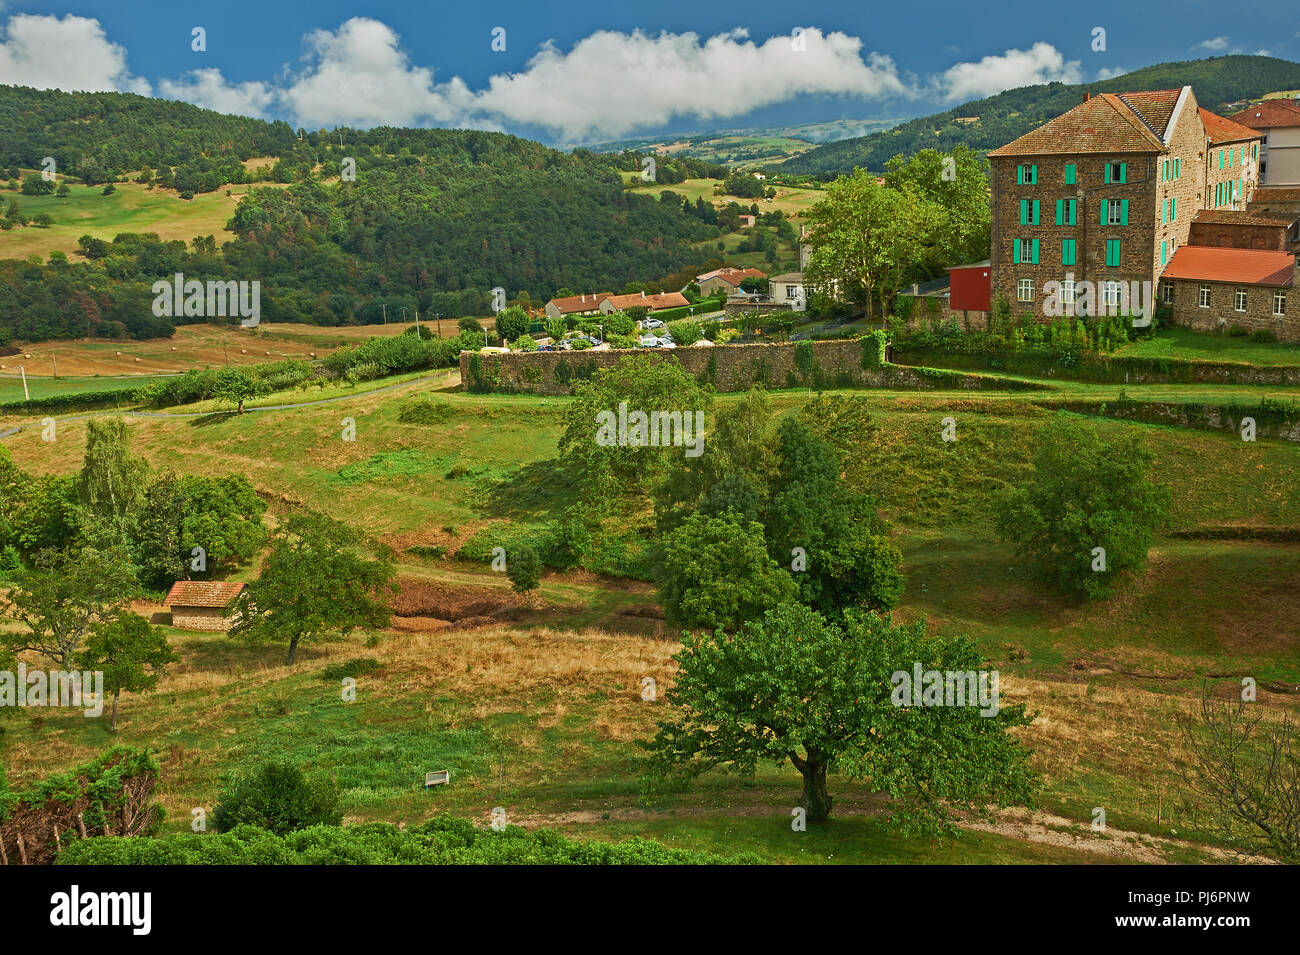 Saint Felicien in the Ardeche department, Rhone Alps region, France Stock Photo